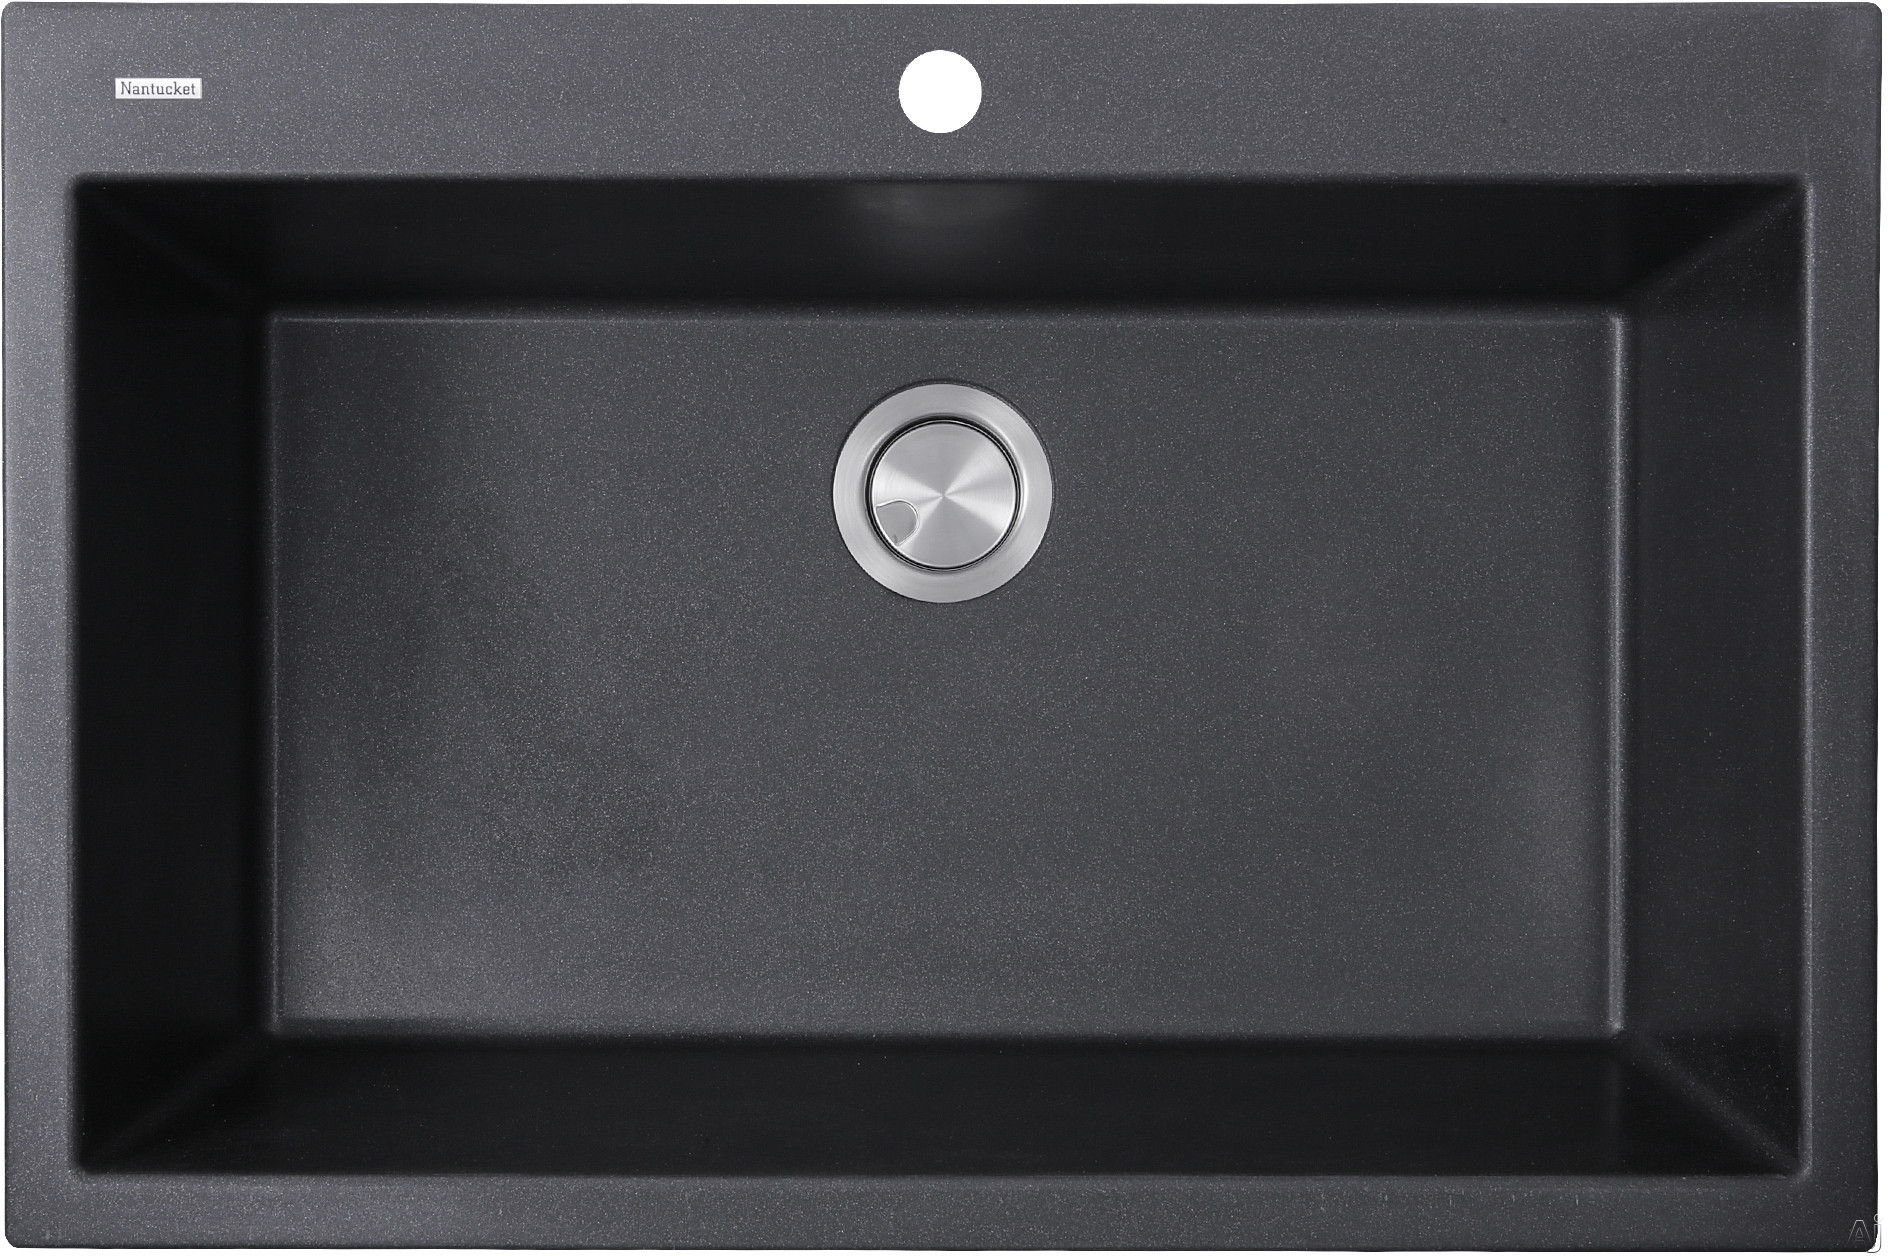 Nantucket Sinks Plymouth Collection PR3322DMBL 33 Inch Dual Mount Granite Composite Kitchen Sink with Dual Mount Design, Heat Resistant and Scratch Resistant: Matte Black